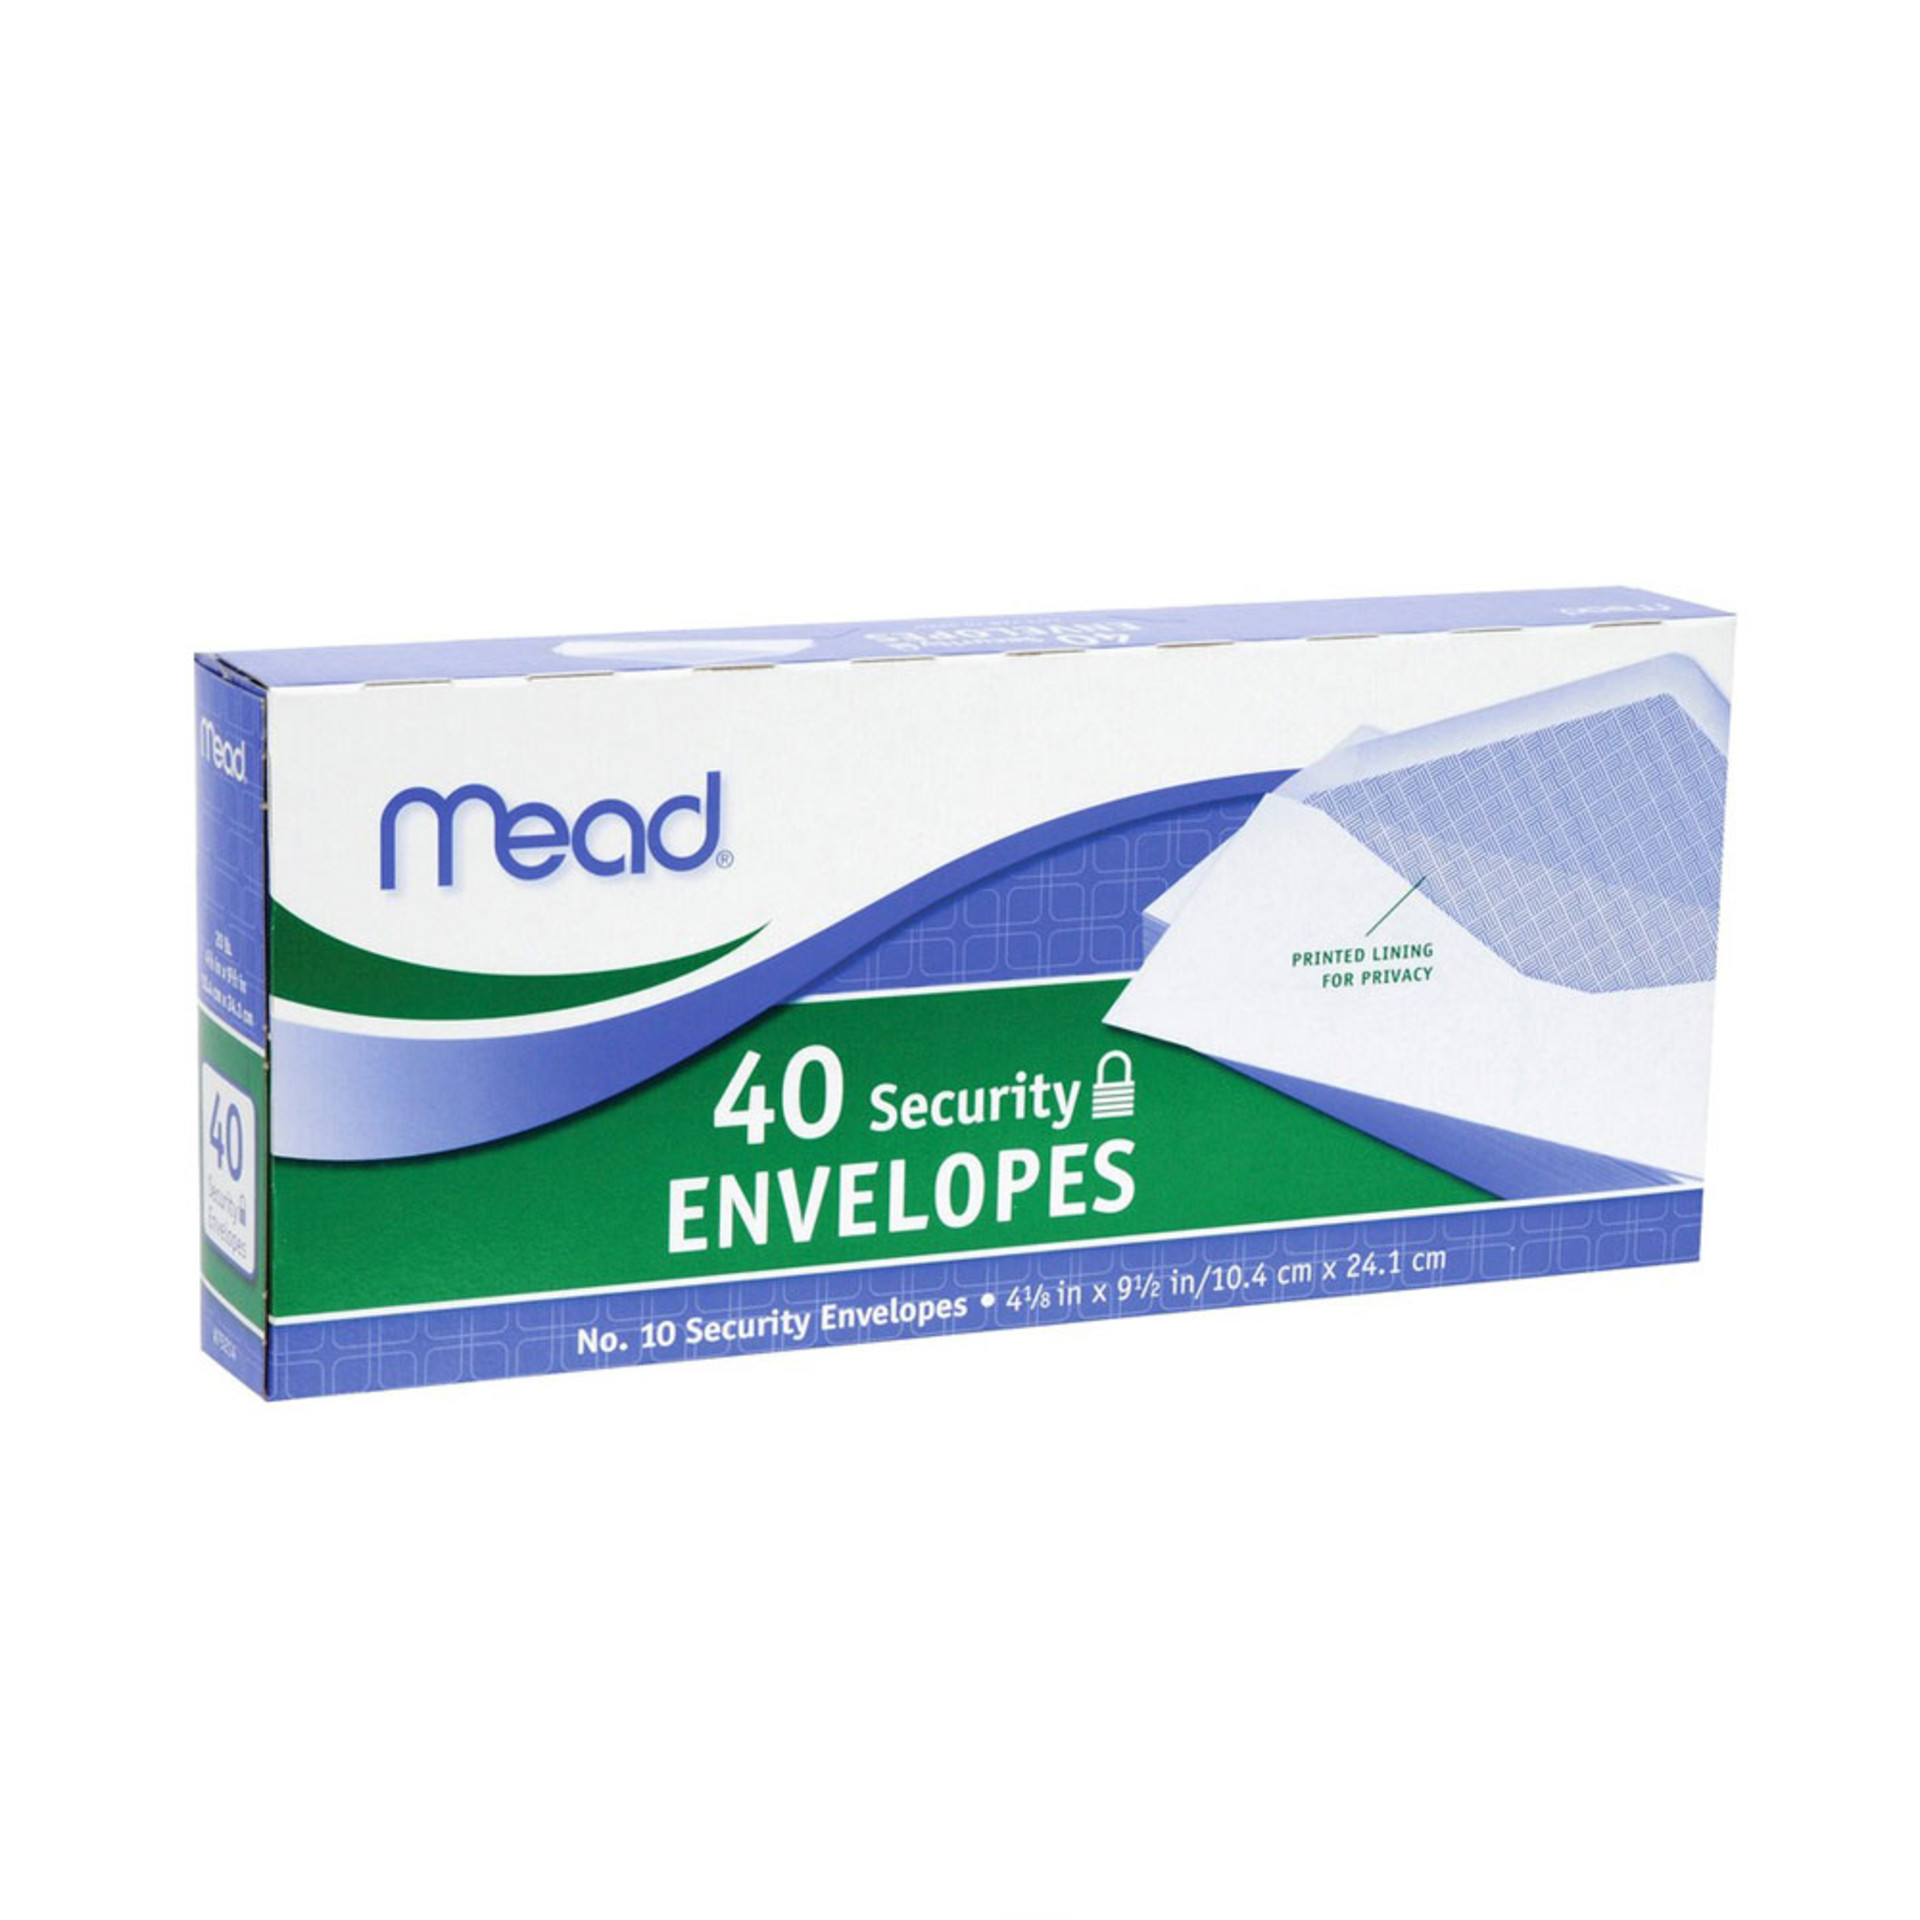 Mead #10 Security Envelopes 40 Count